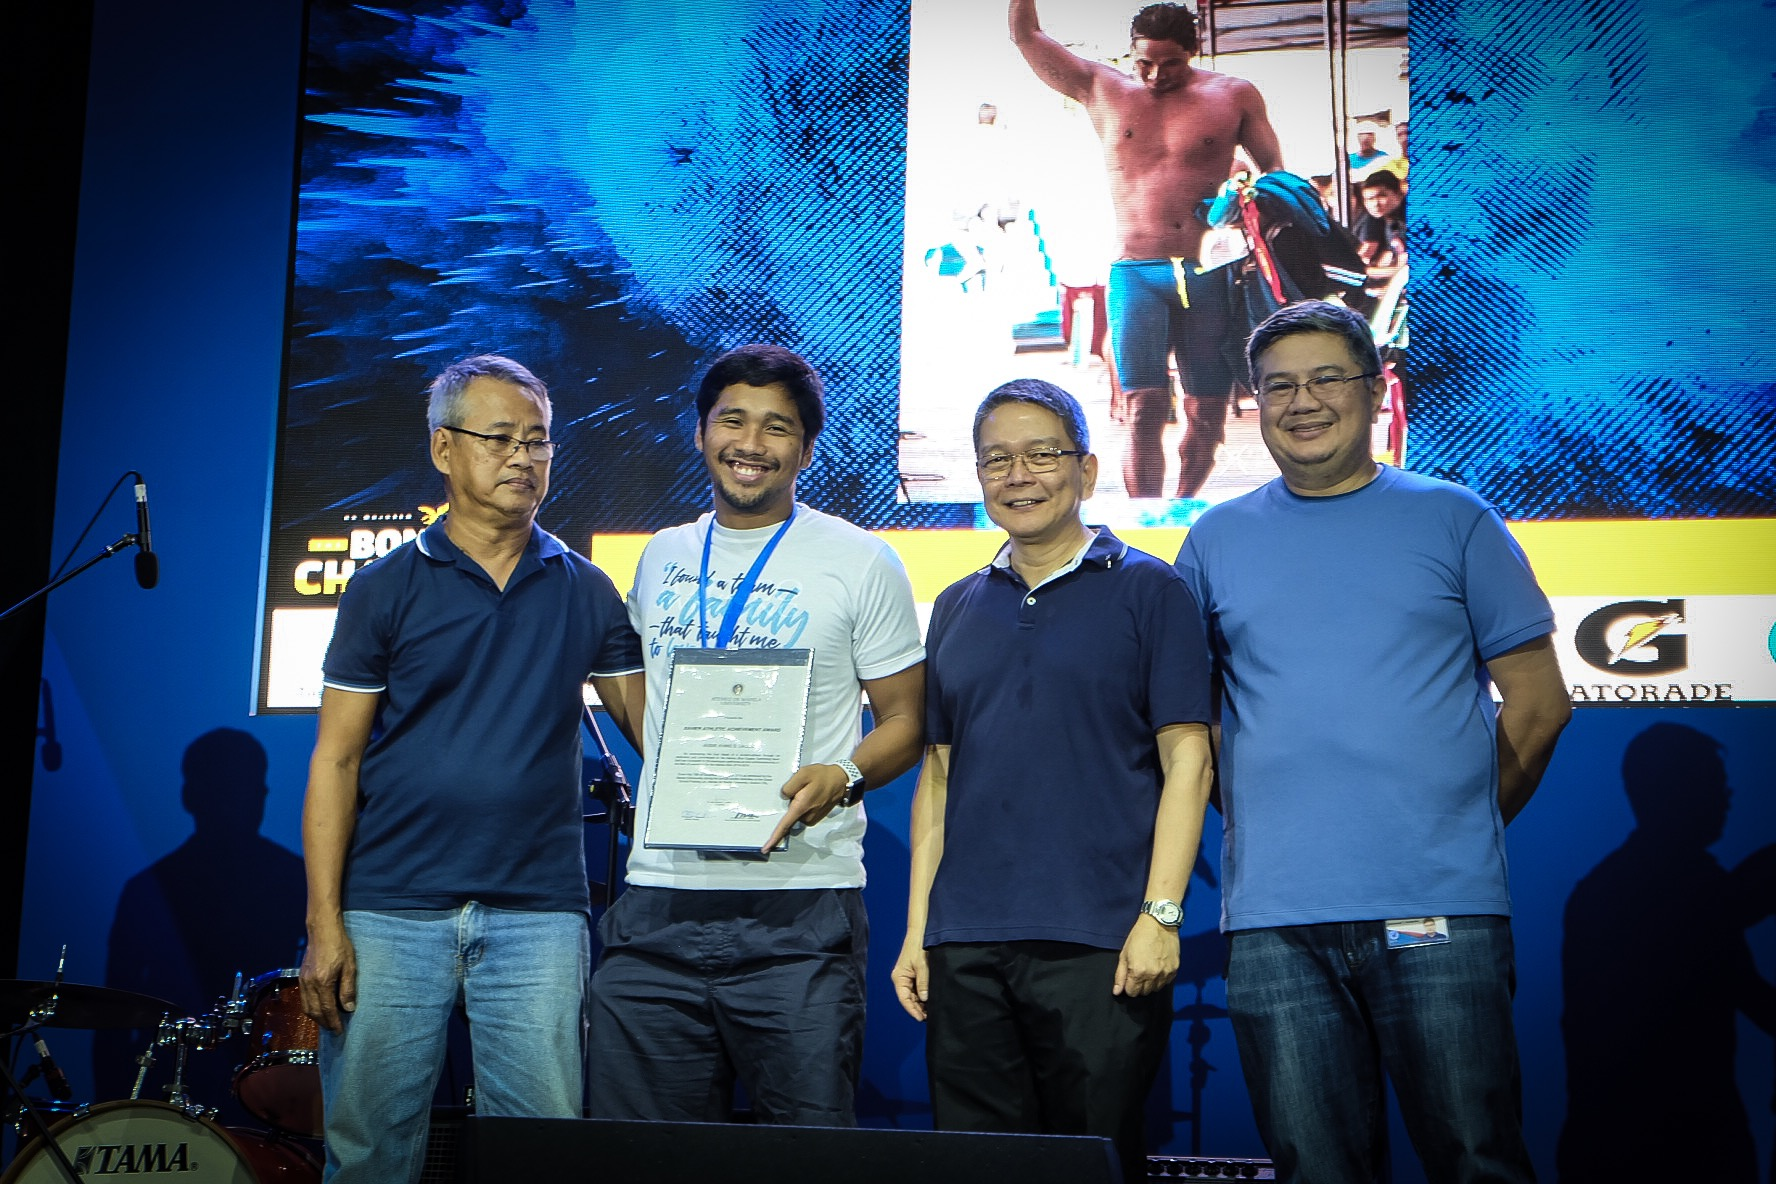 OLYMPIAN. Two-time Olympian Jessie Lacuna receives the Xavier Excellence award for his outstanding contributions to the 5-peat champion Ateneo men's swimming team. Photo by Beatrice Go/Rappler